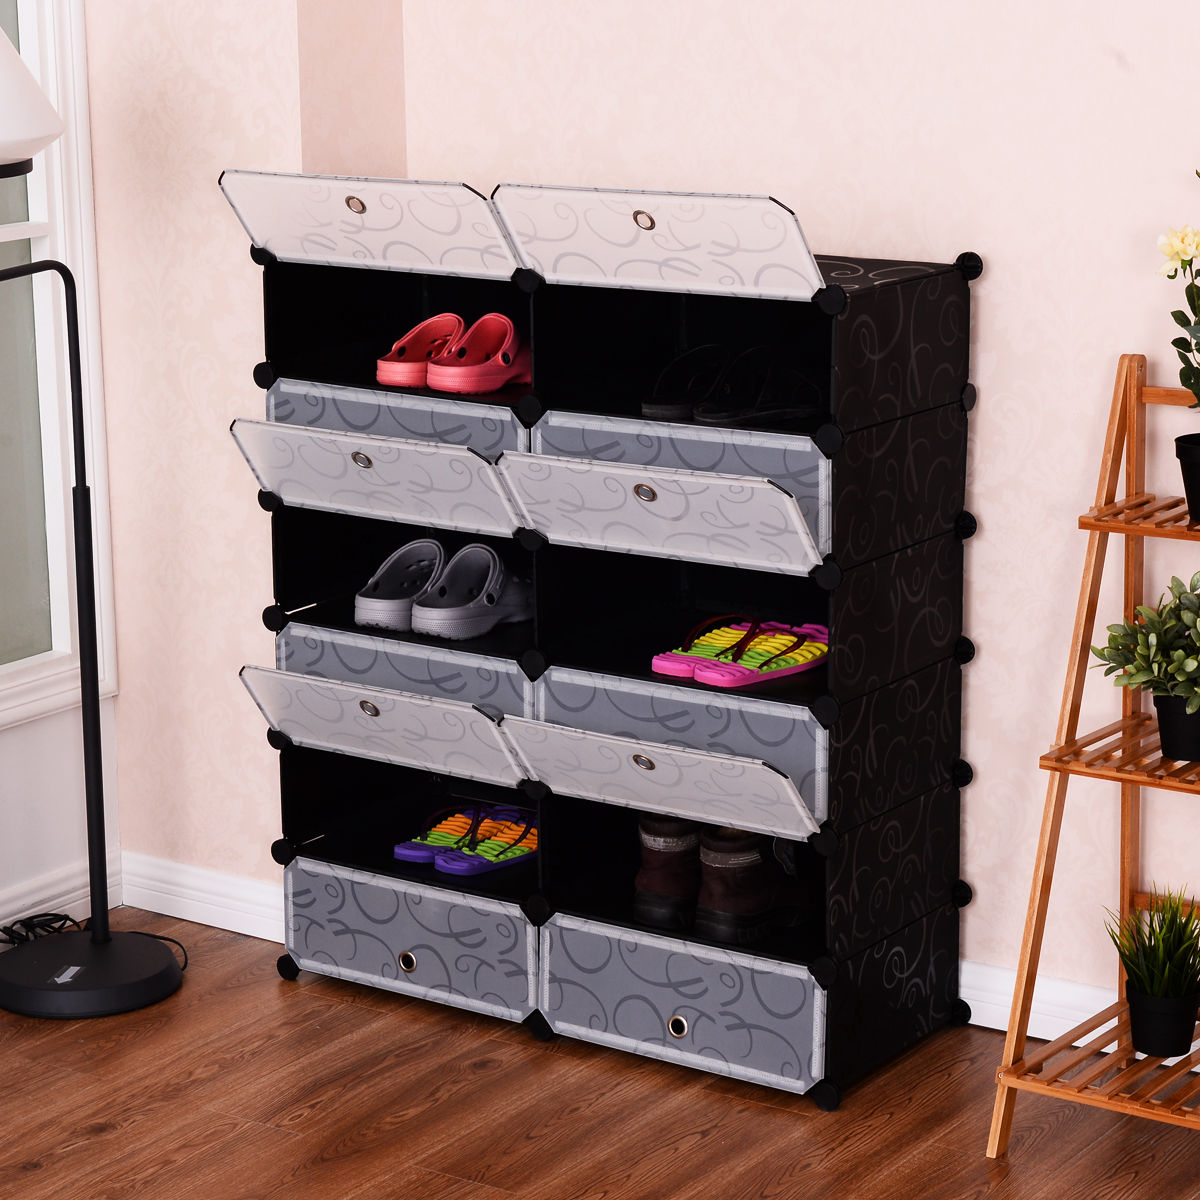 Giantex 12 Cubic Portable Shoe Rack Shelf Modern Waterproof Shoes Cabinet Storage Closet Shoe Organizer Home Furniture HW54796 shoe rack nonwovens steel pipe 4 layers shoe cabinet easy assembled shelf storage organizer stand holder living room furniture